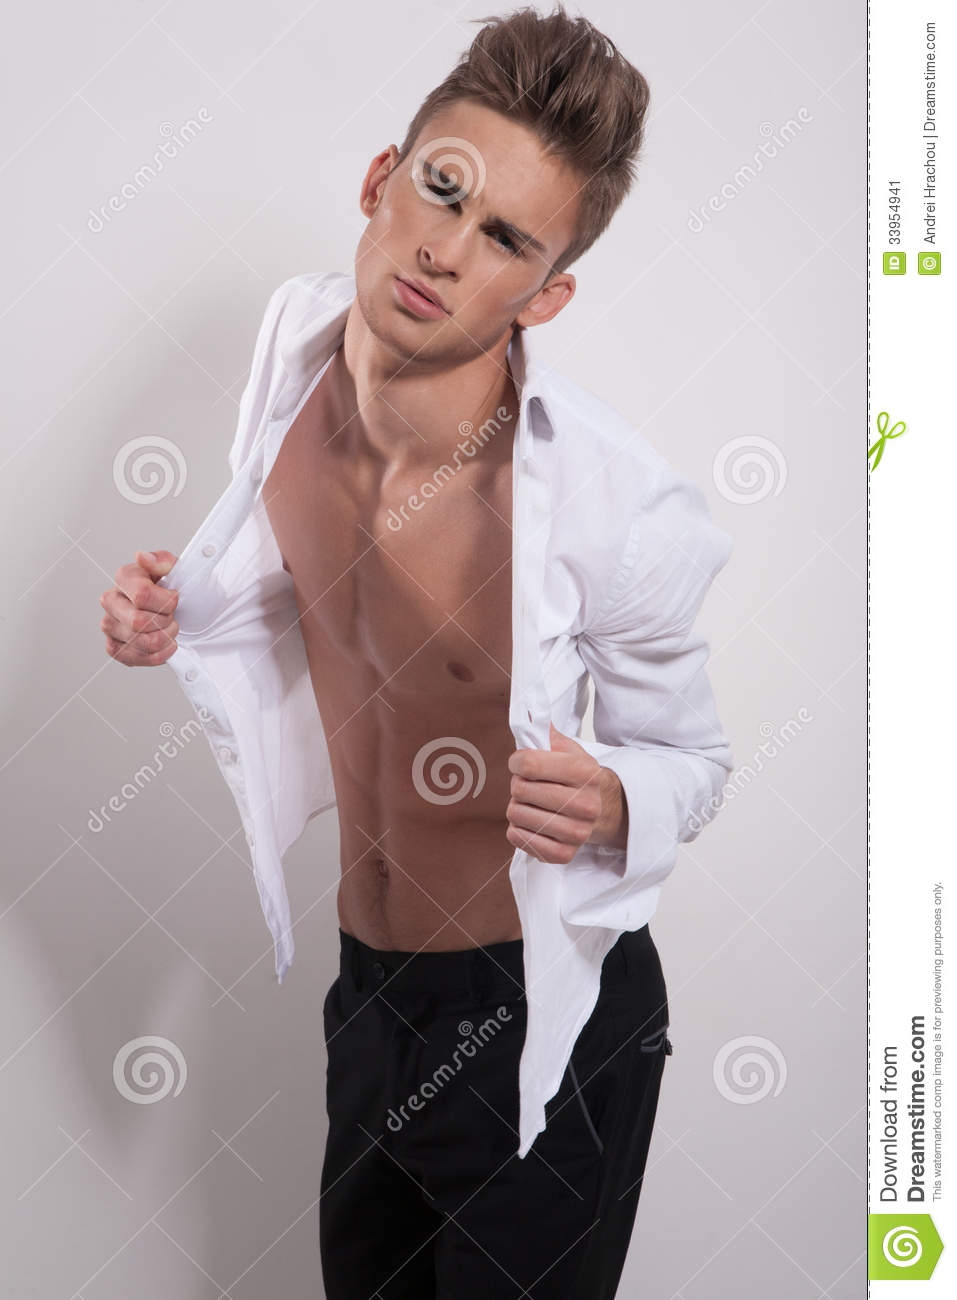 Young Male With Hands On His Shirt Stock Image Image